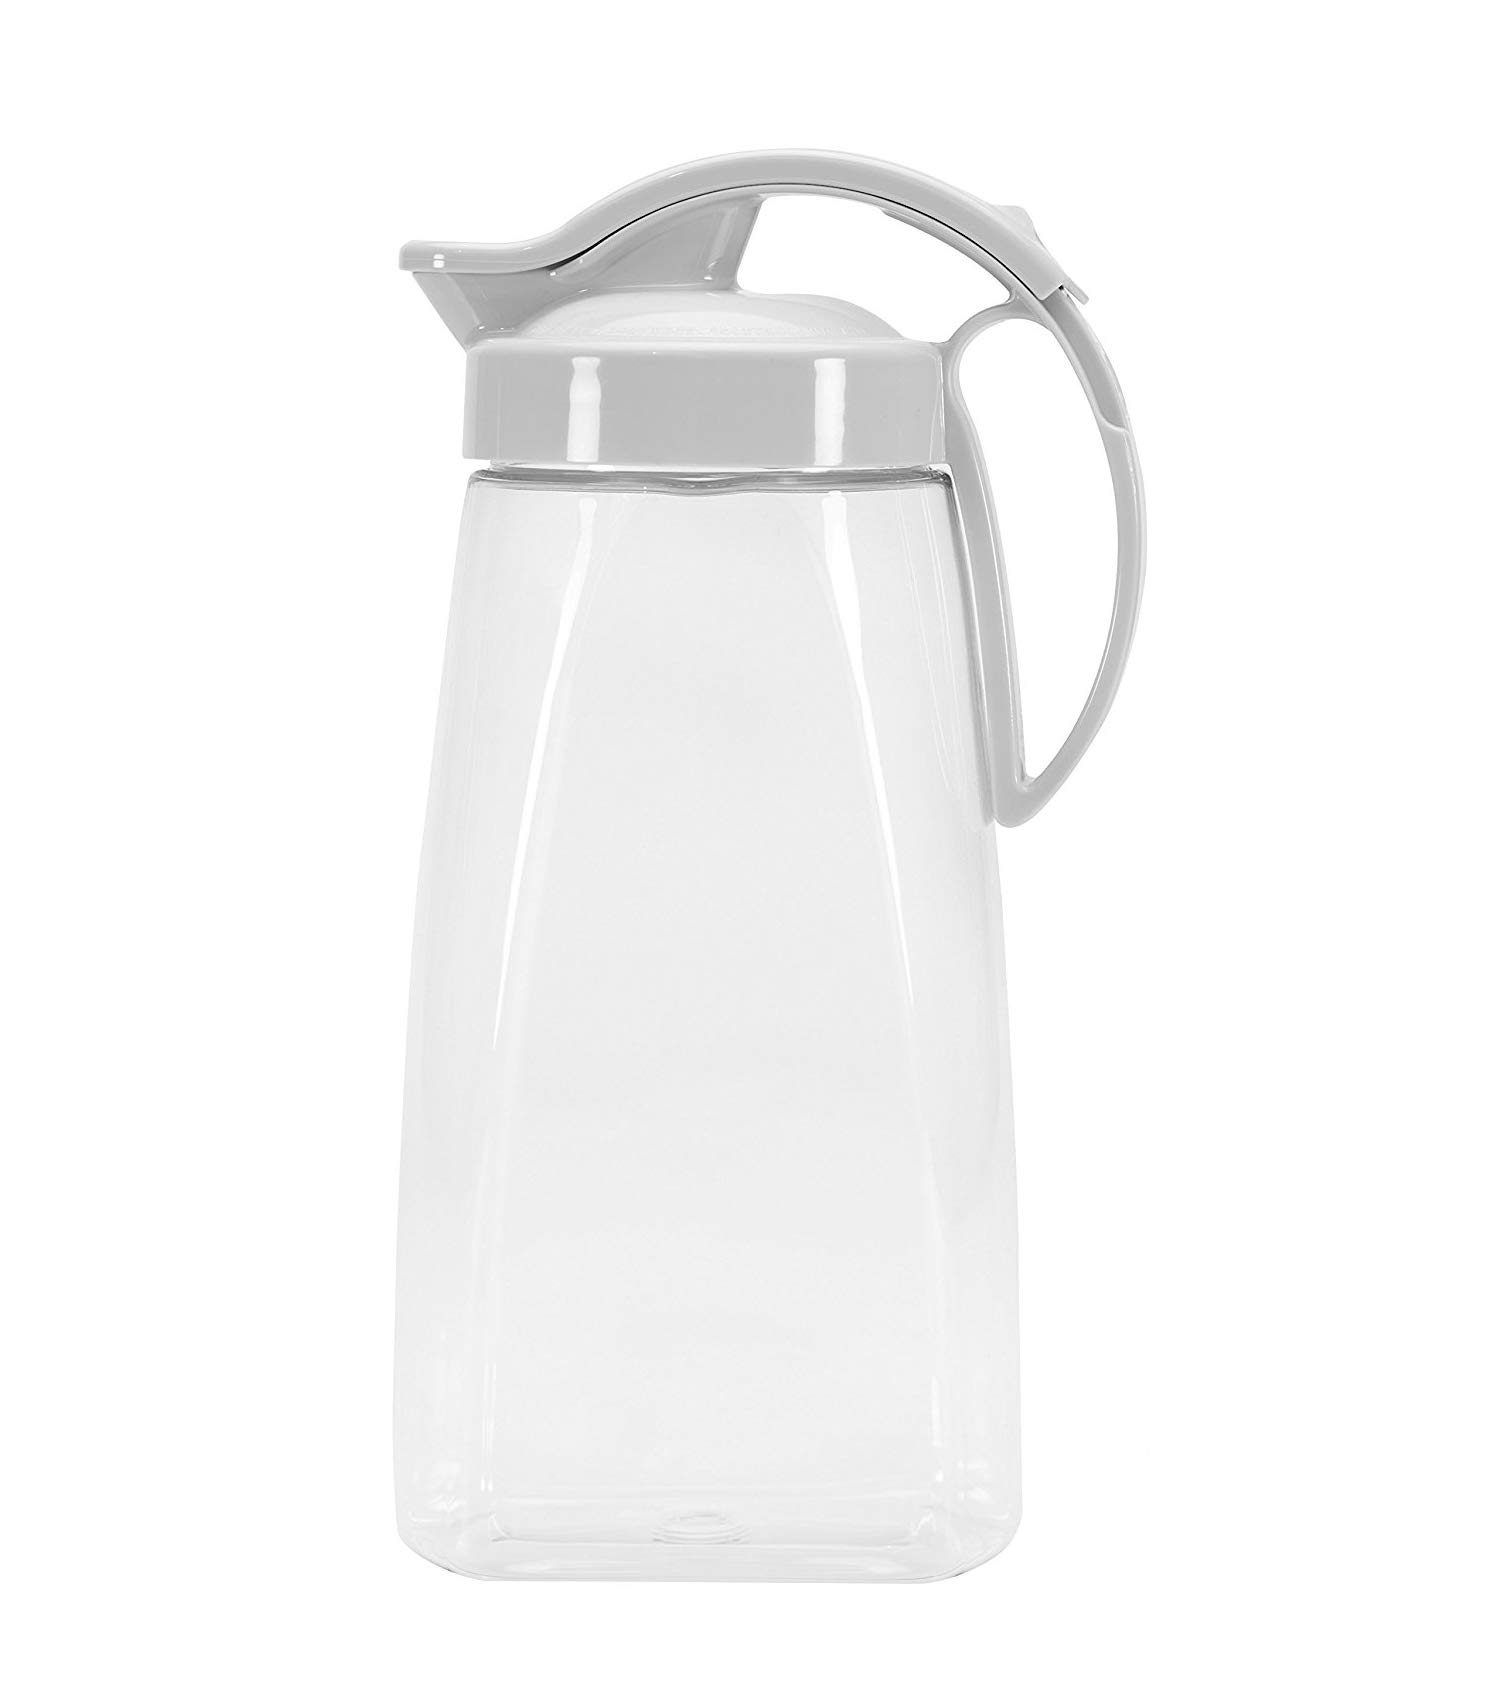 High Heat Resistant One-touch Airtight Pitcher 2.3QT (74oz) for Water, Coffee, Tea, Other Hot or Cold Beverages | Leak Proof & Space Saving, Dishwasher Safe, BPA Free | Made in Japan